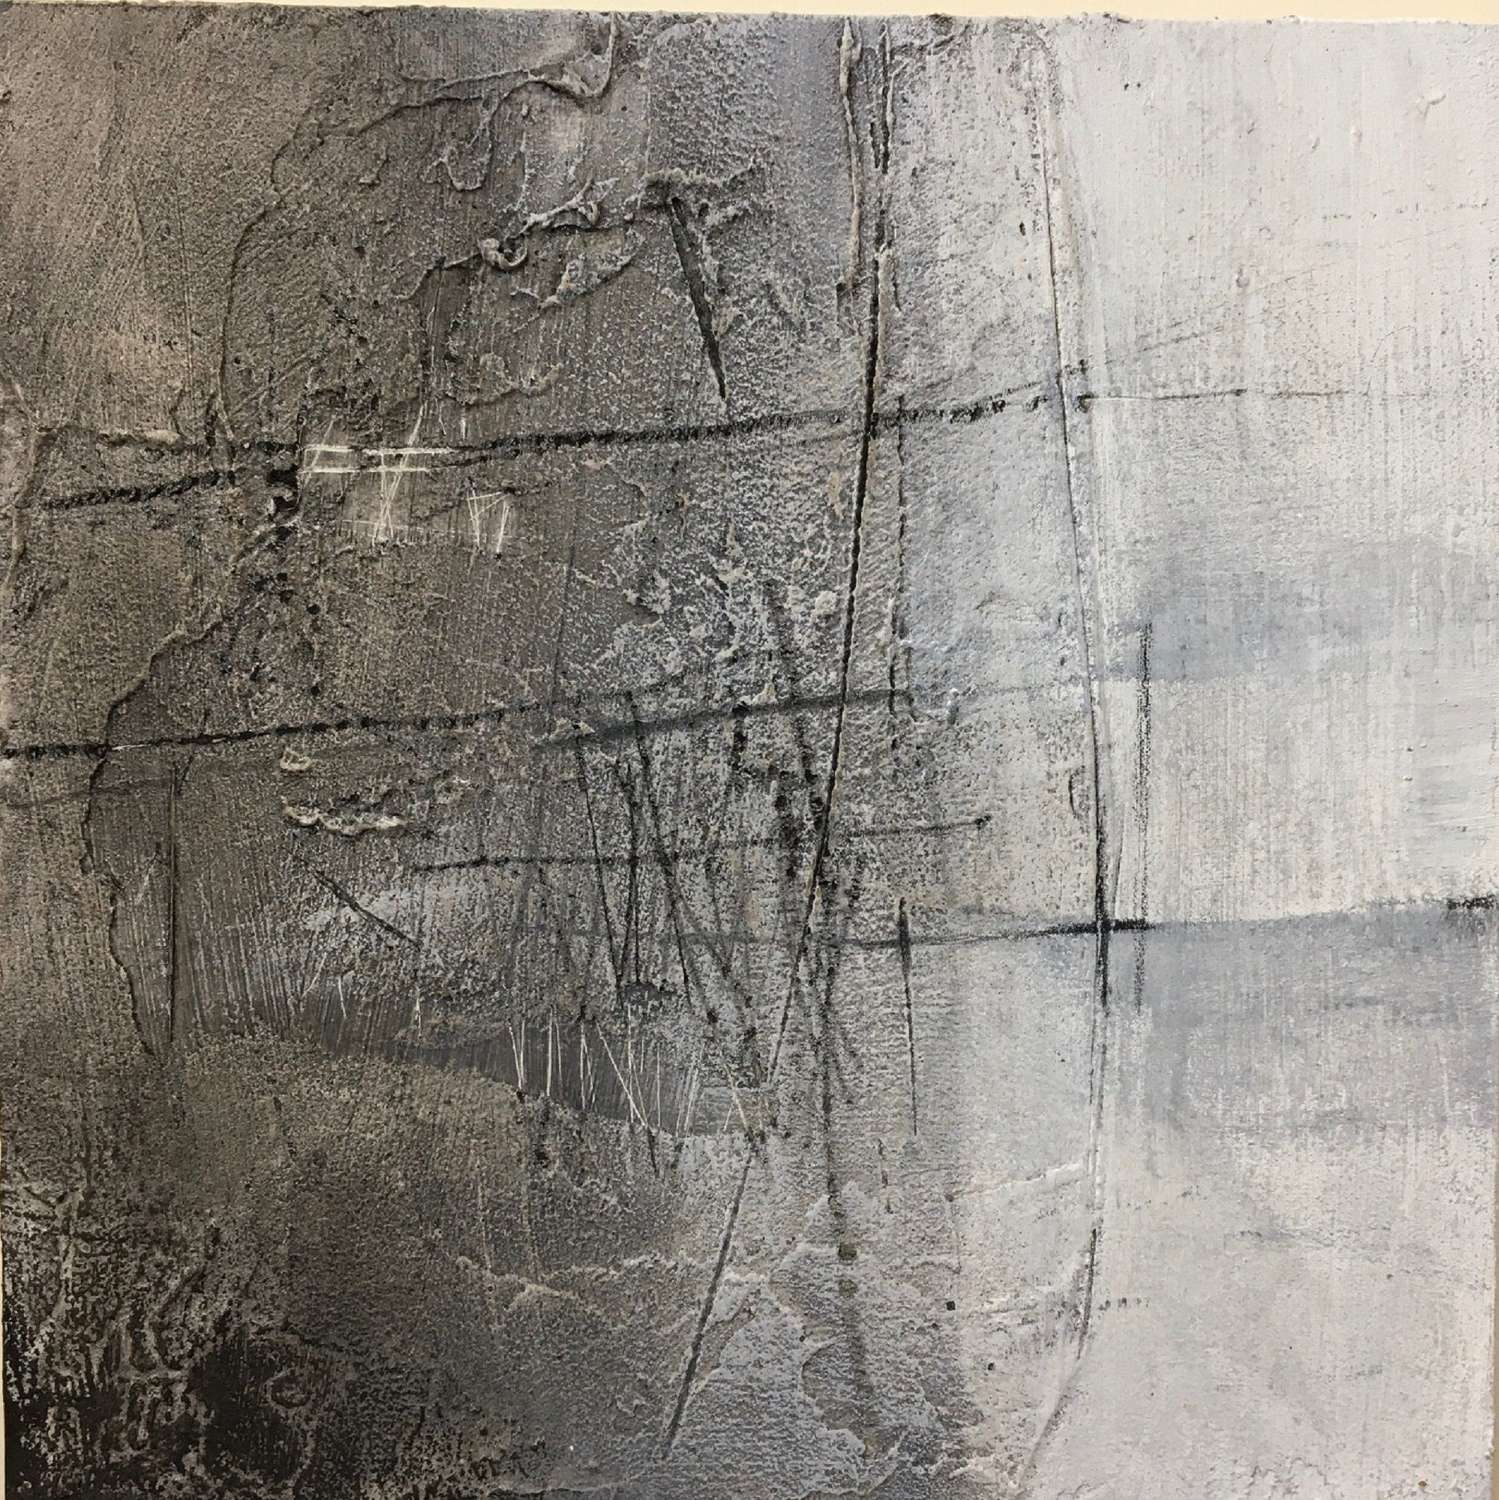 Michele Griffiths. Untitled 2